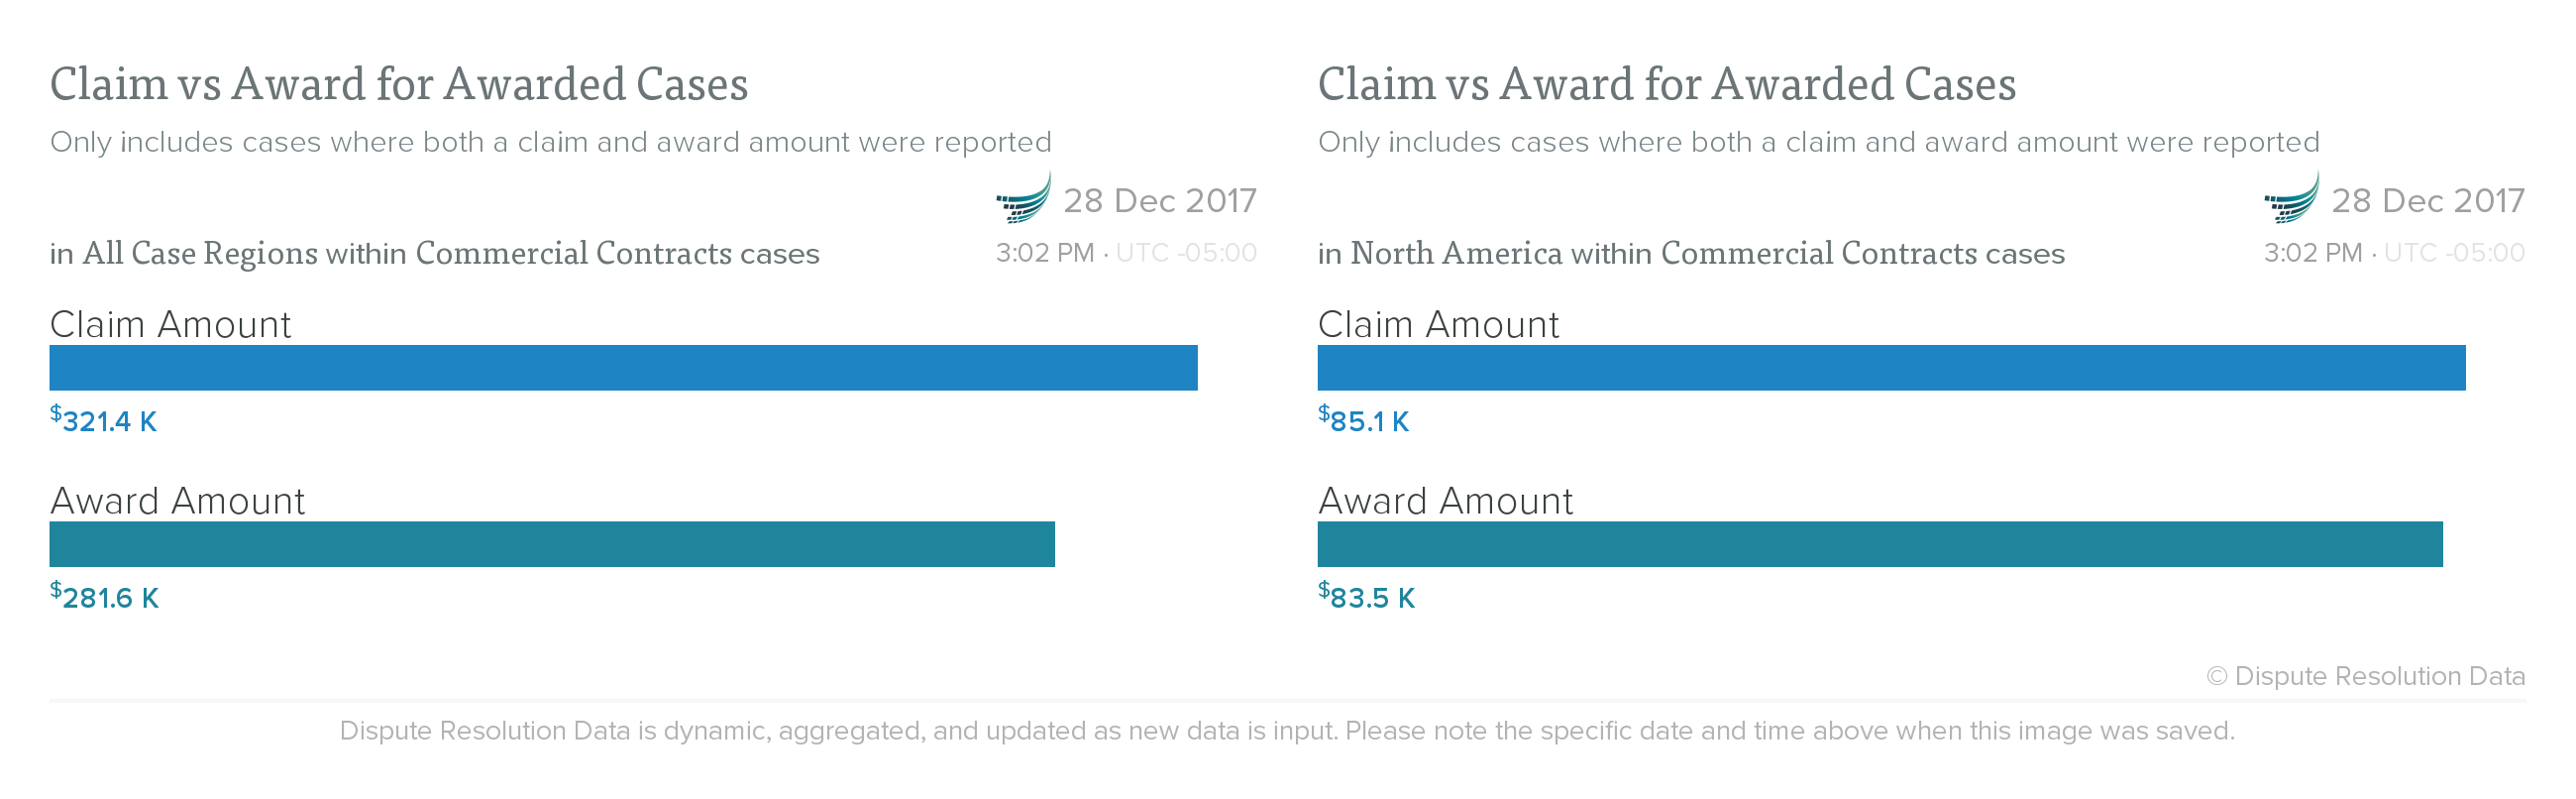 claim_vs_award_ALL_v_NA.png